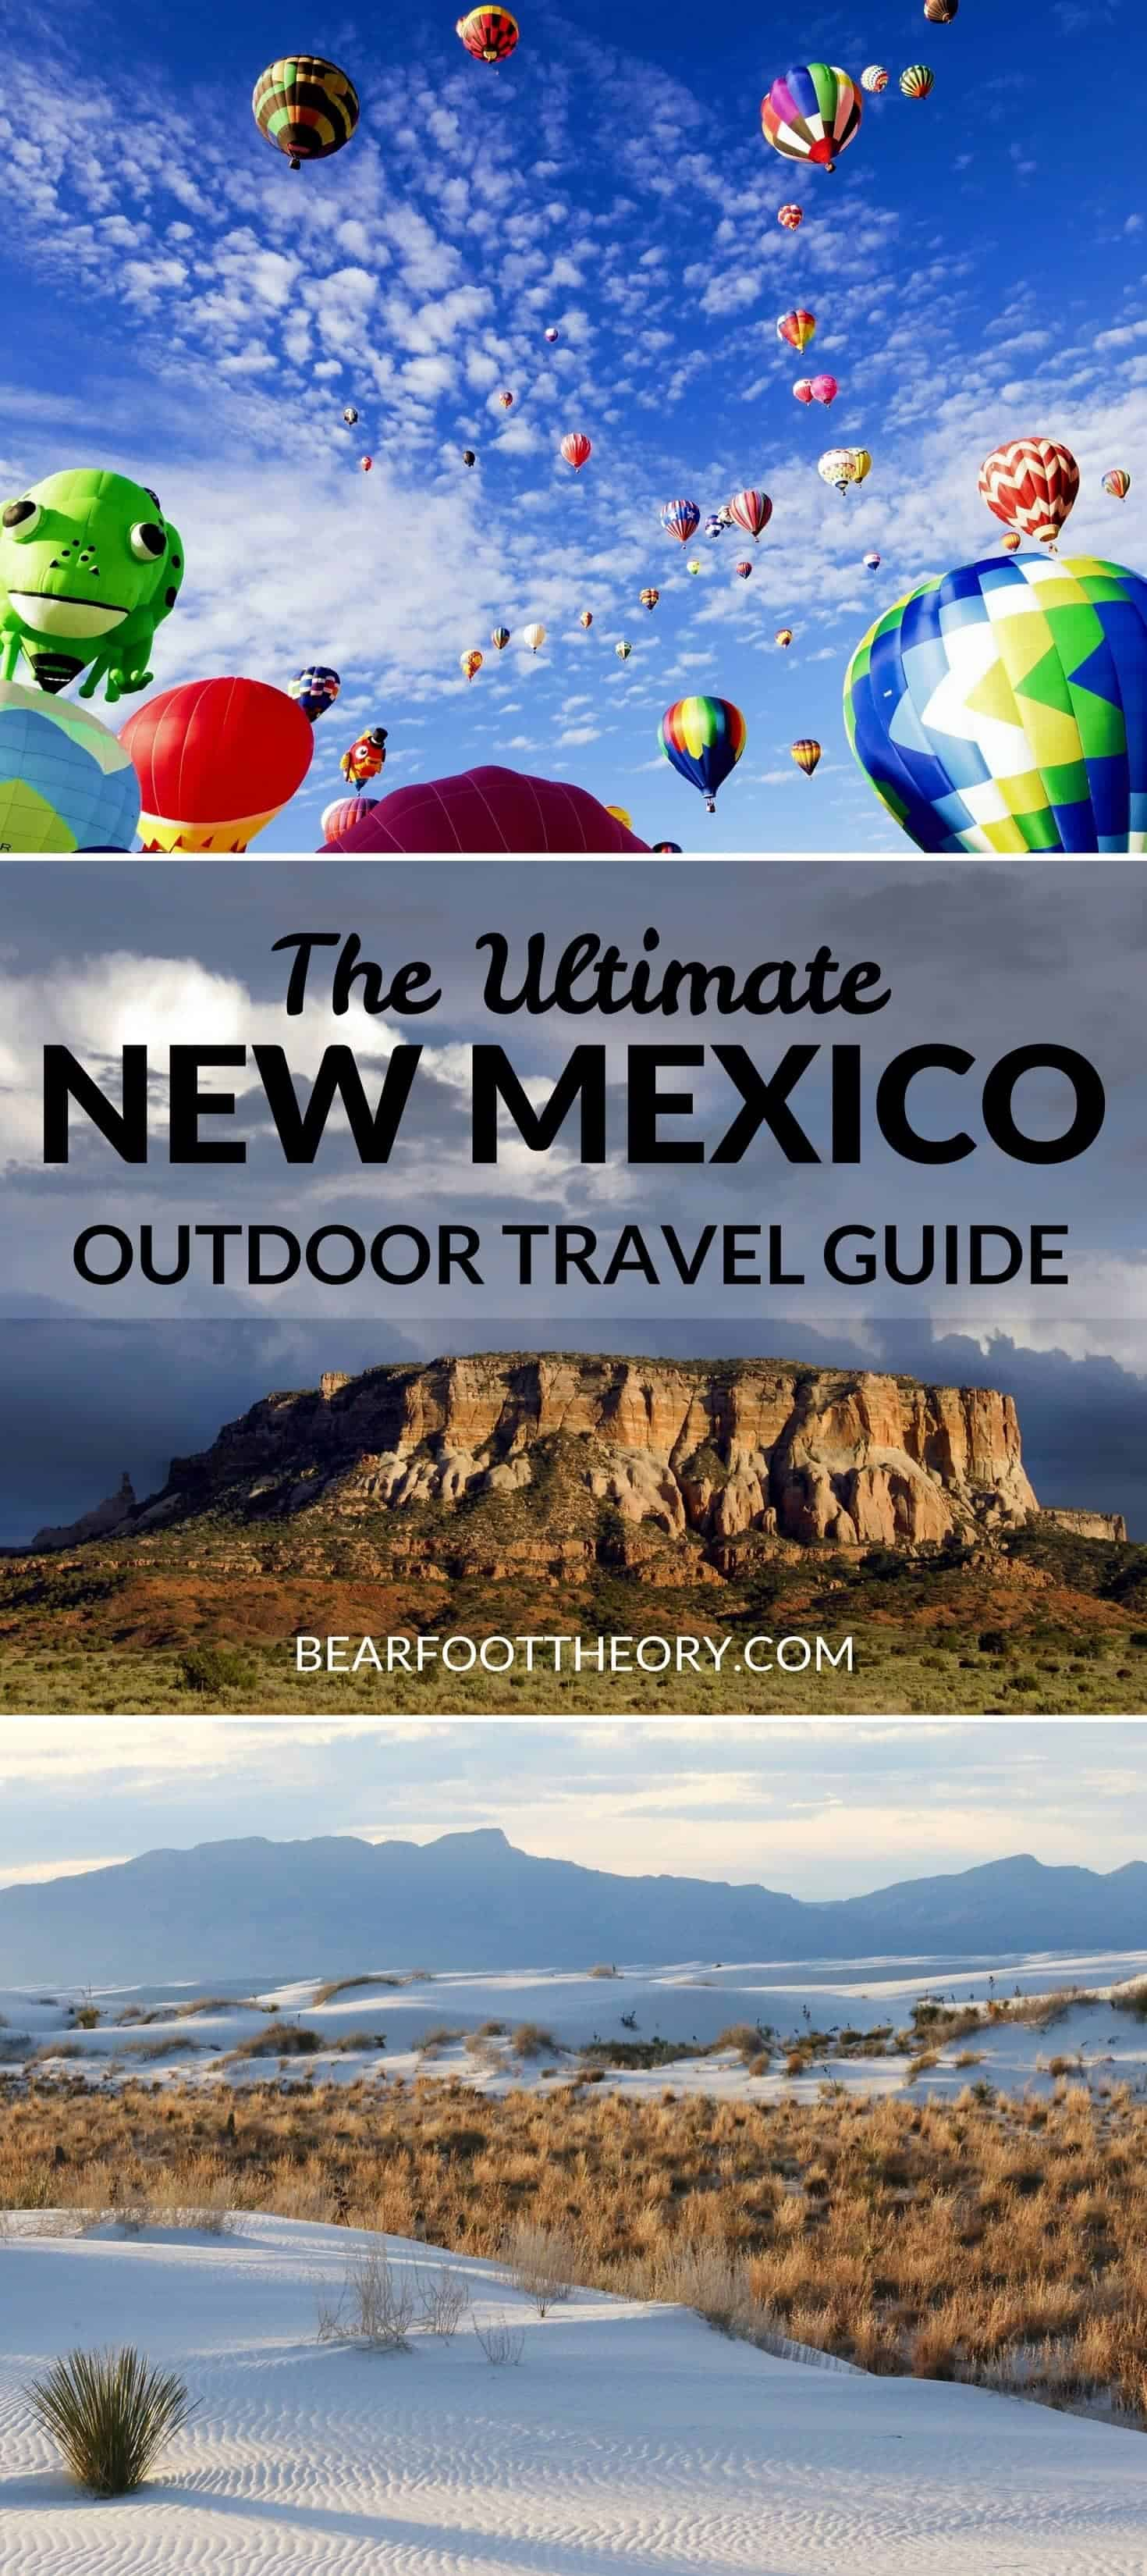 Plan an adventurous trip to New Mexico with our outdoor travel guide featuring the best outdoor activities, parks & most popular blog posts.